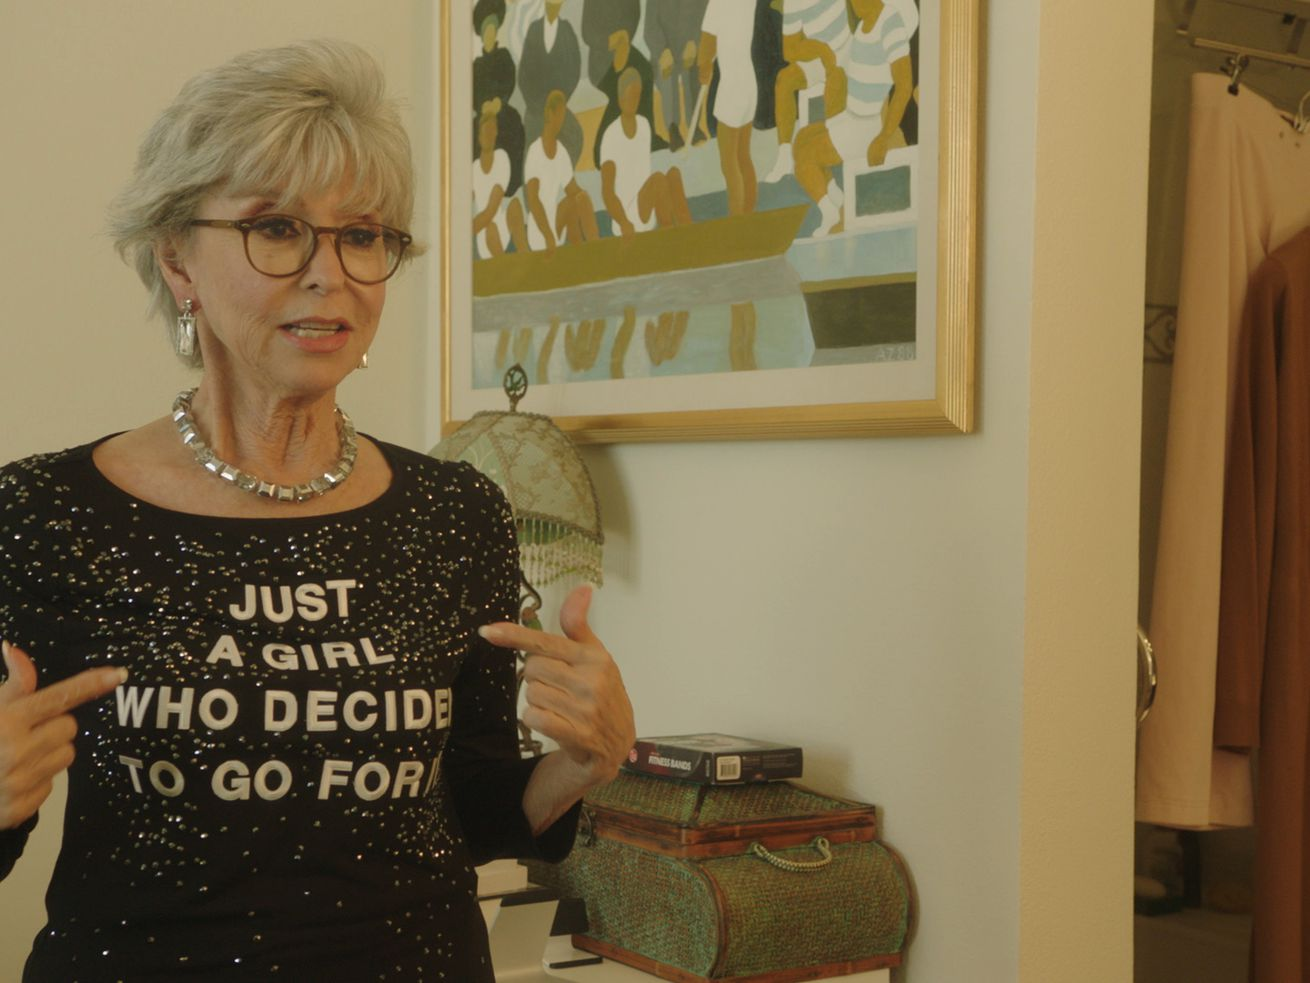 """Just a Girl Who Decided to Go For It,"" starring Rita Moreno, will be screened at the Chicago Latino Film Festival."